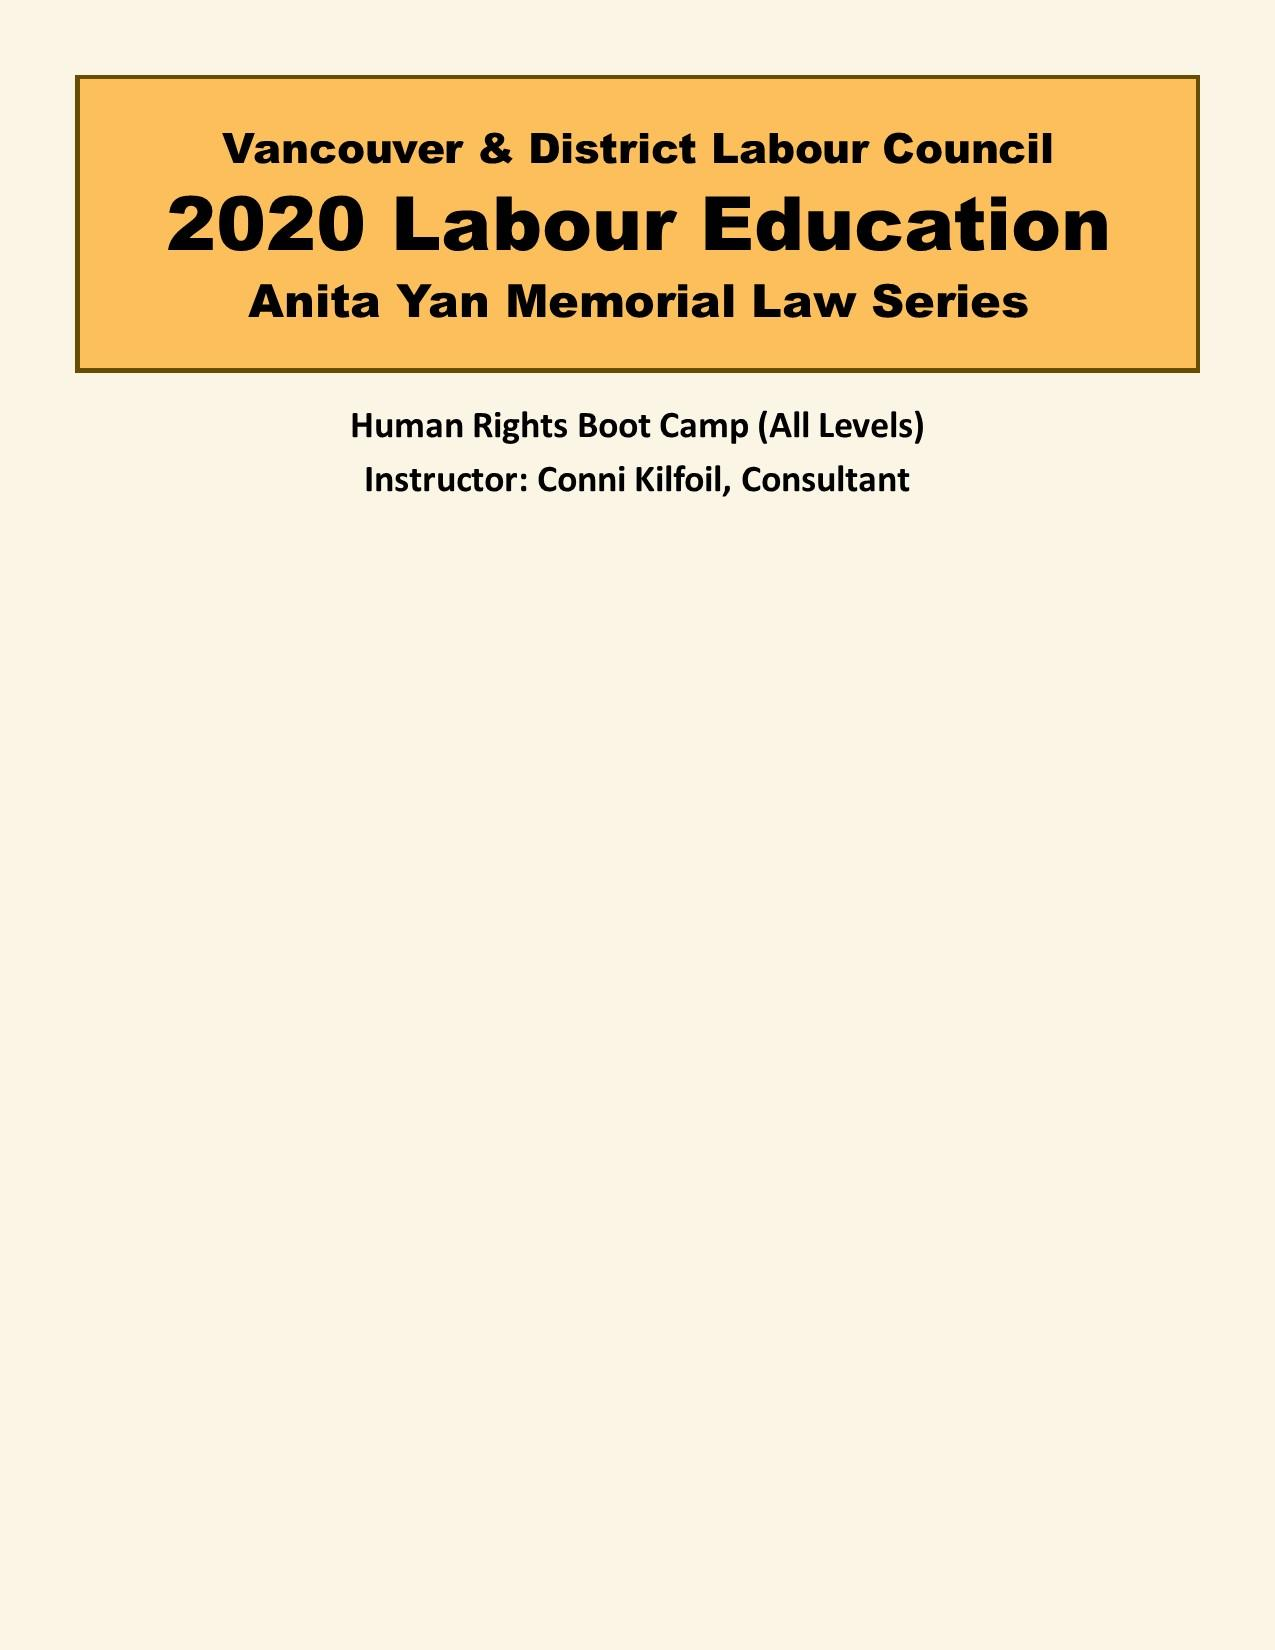 Human Rights Boot Camp (All Levels)